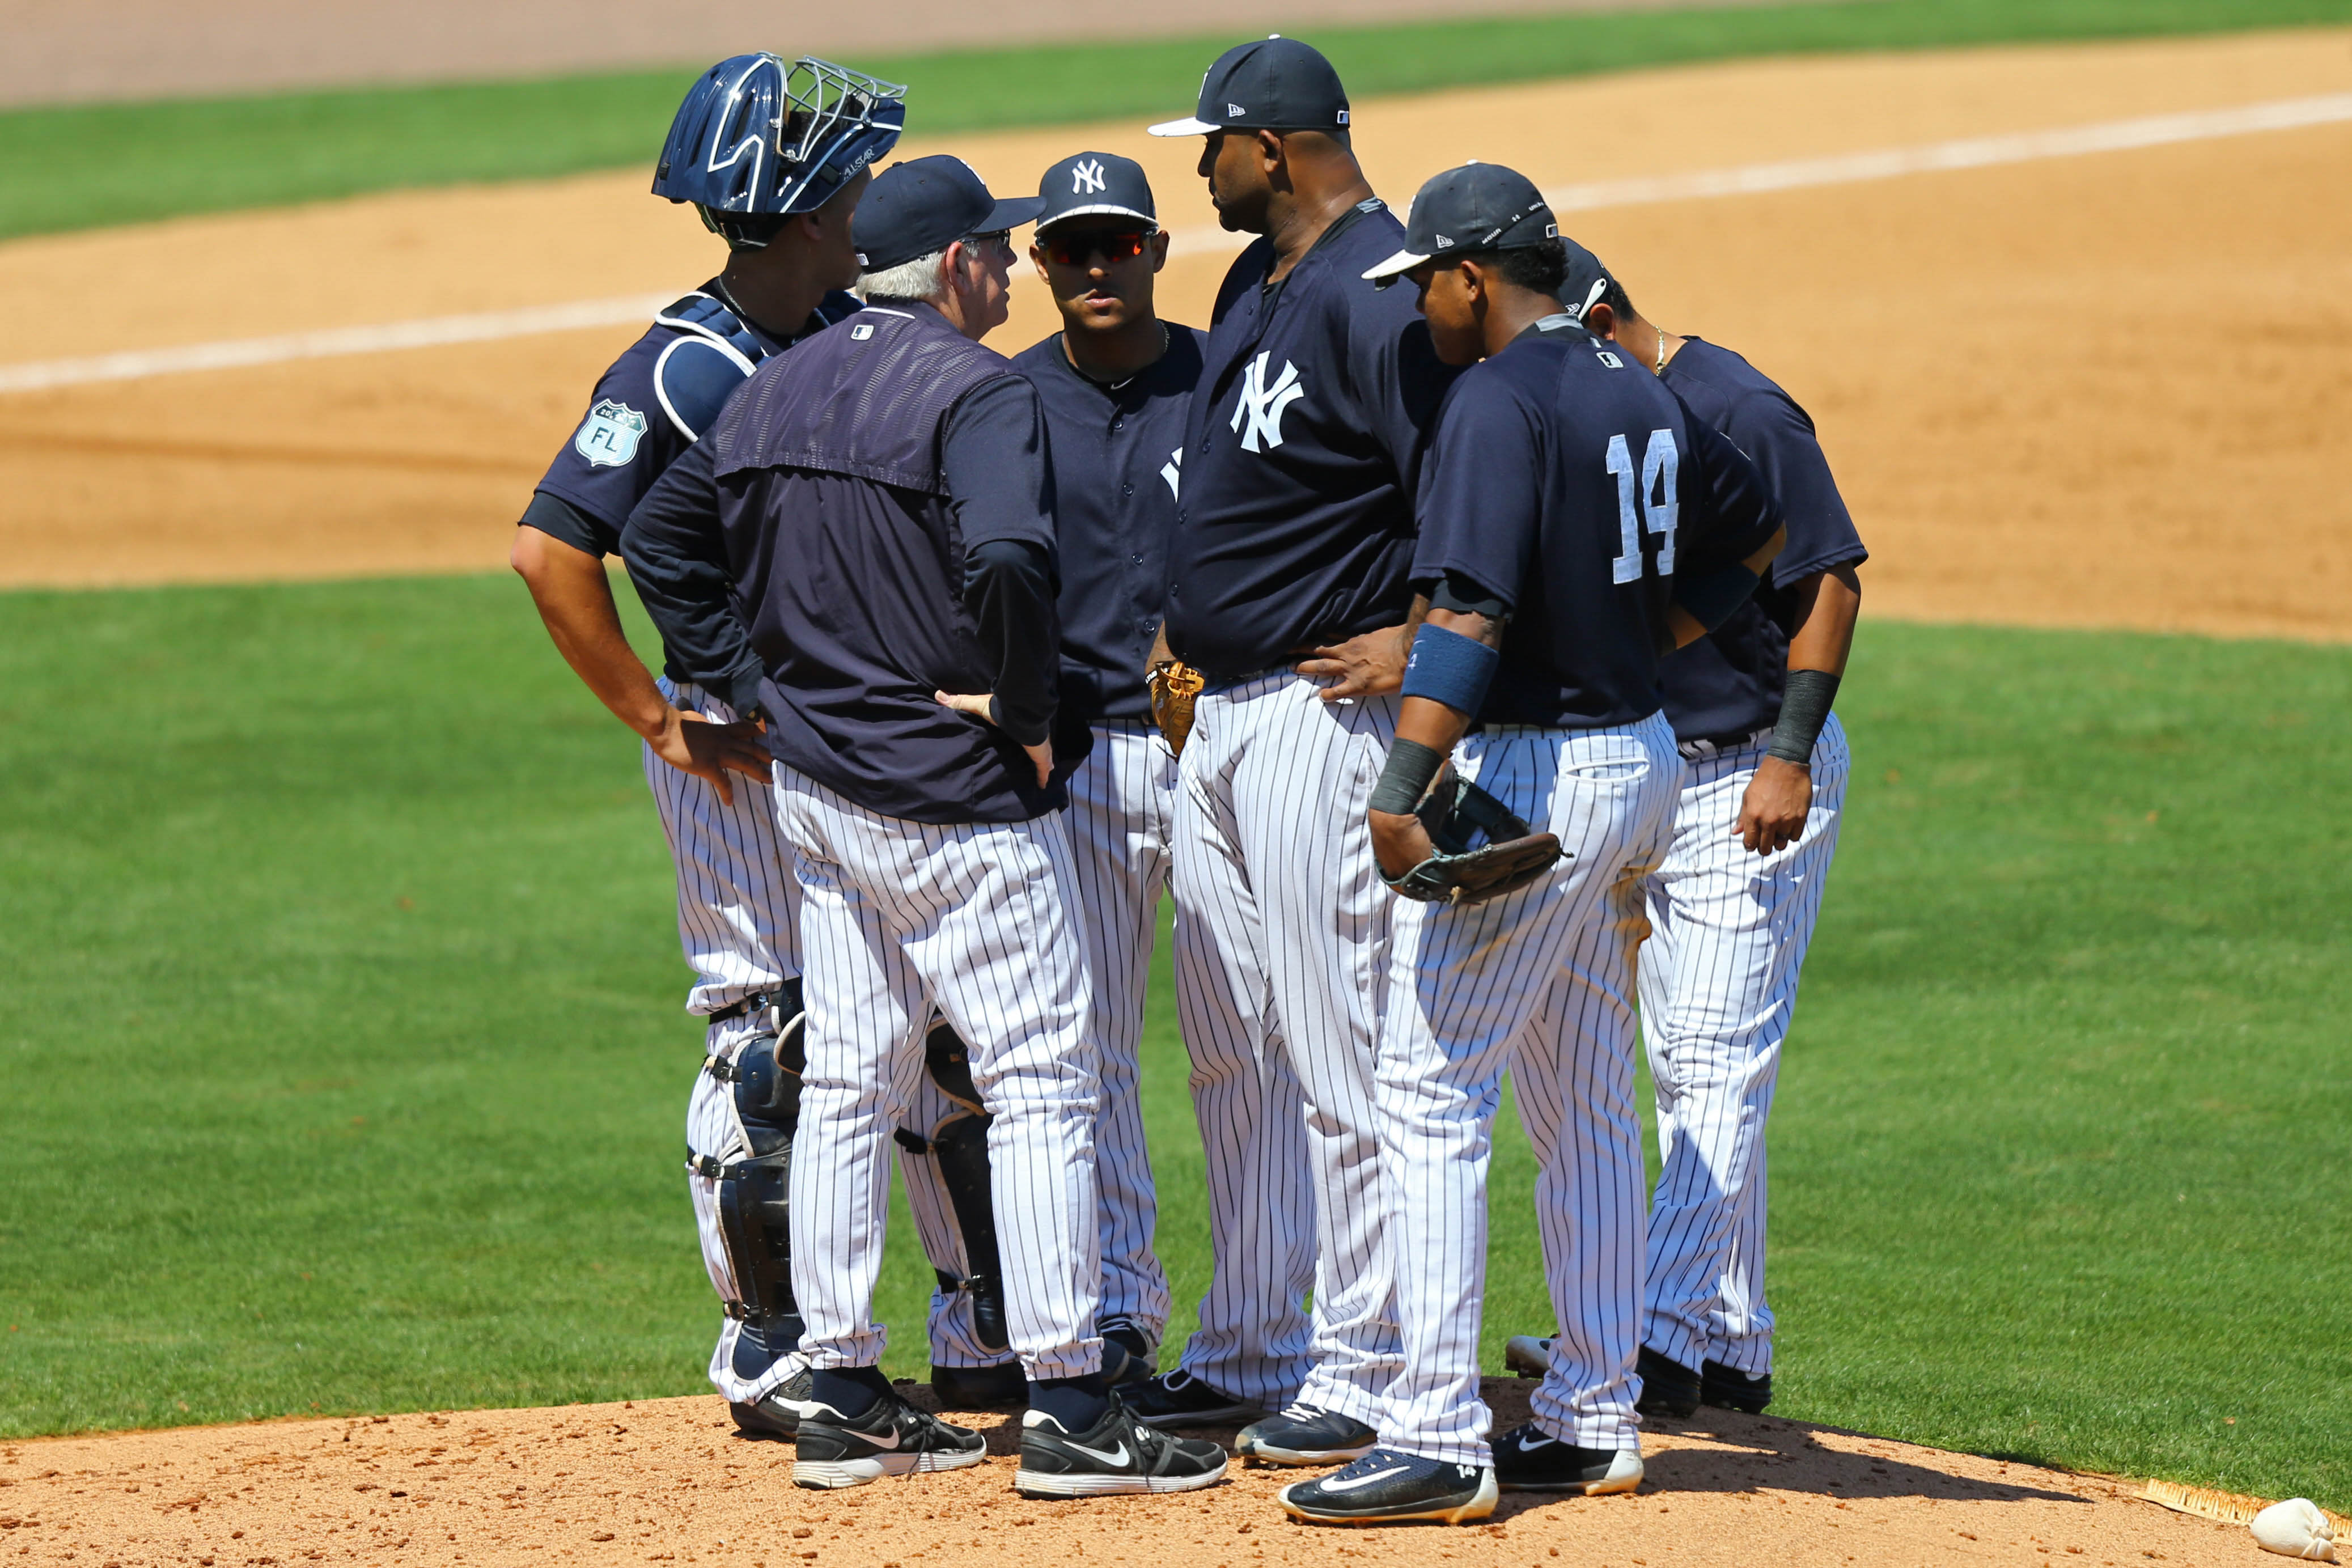 9976943-mlb-spring-training-baltimore-orioles-at-new-york-yankees